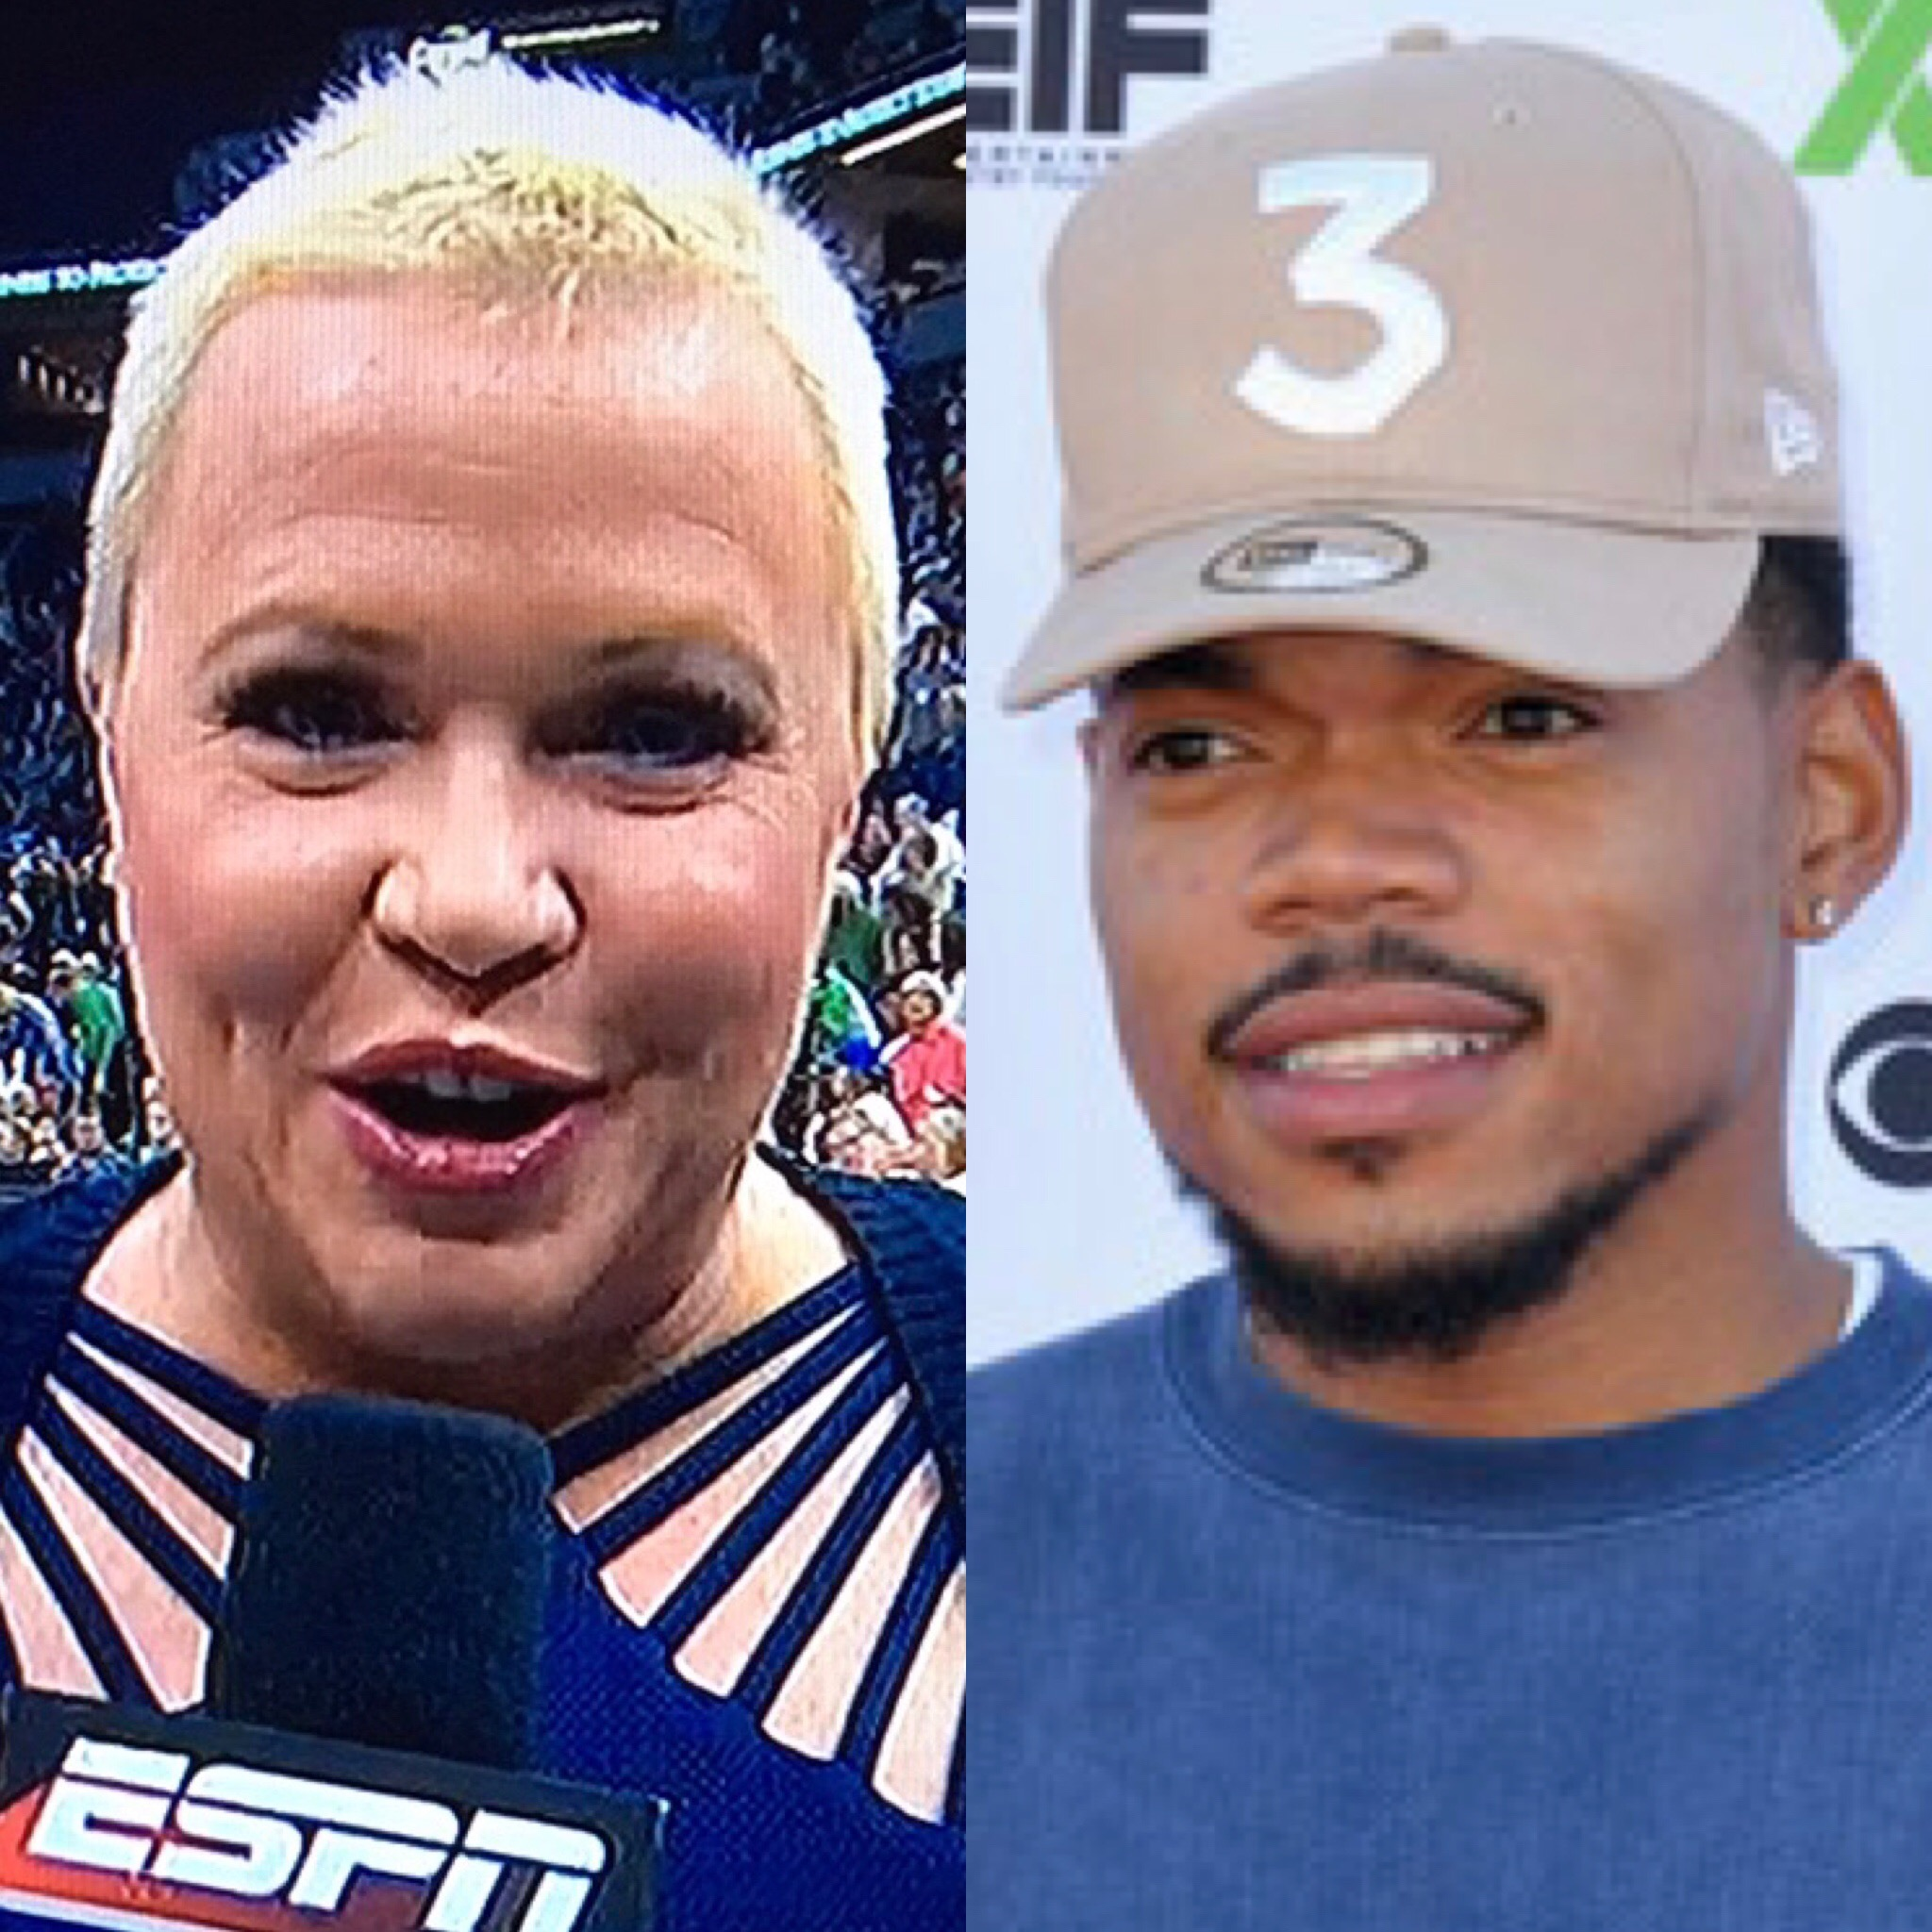 Holly Rowe and Chance the Rapper